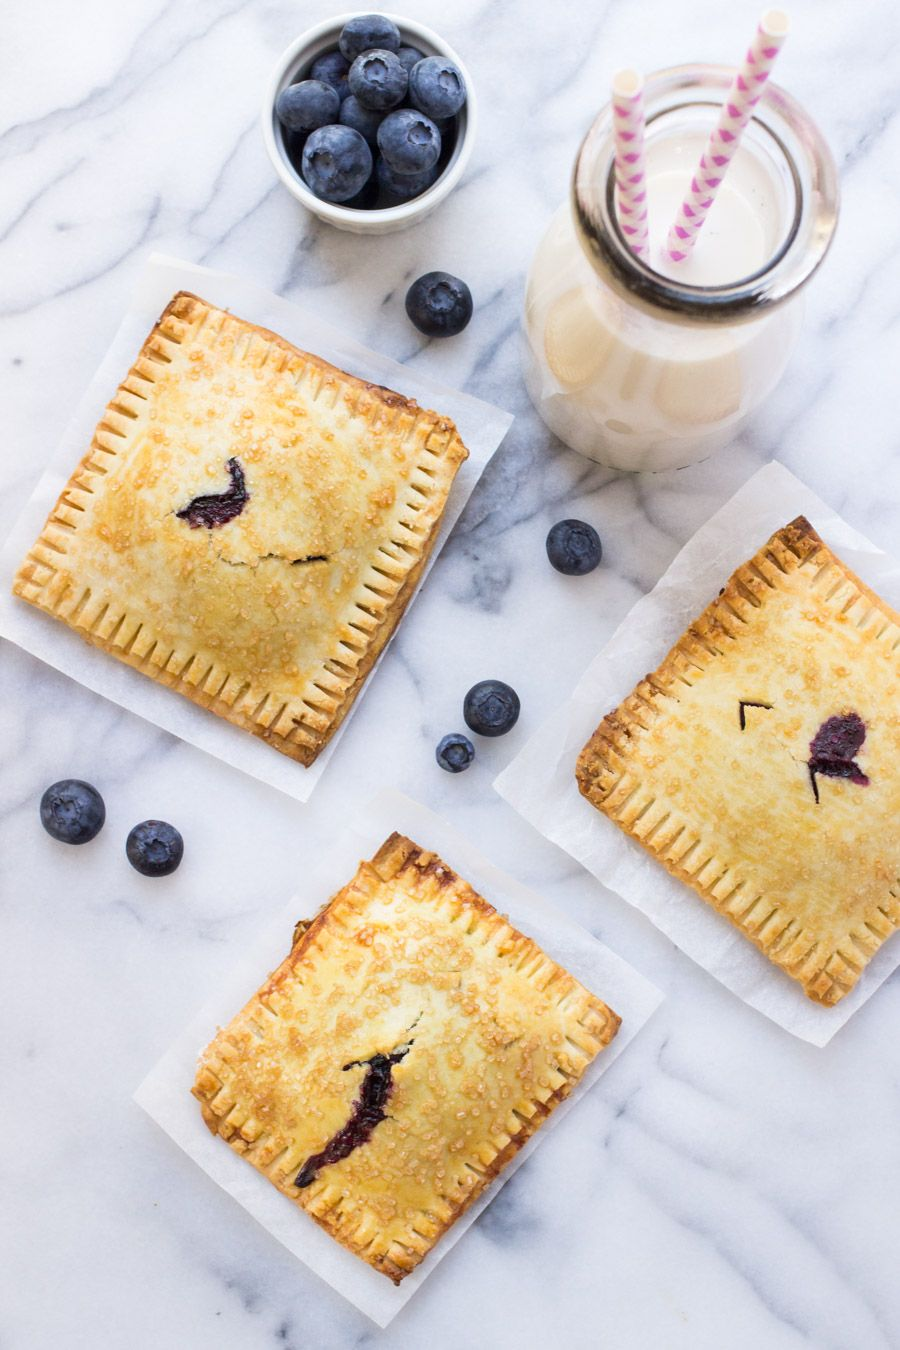 GlutenFree Blueberry Hand Pies is part of Blueberry dessert Gluten Free - With fresh berries plentiful, hand pies (a k a  turnovers) are summer's perfect portable dessert  Check out our glutenfree blueberry hand pies